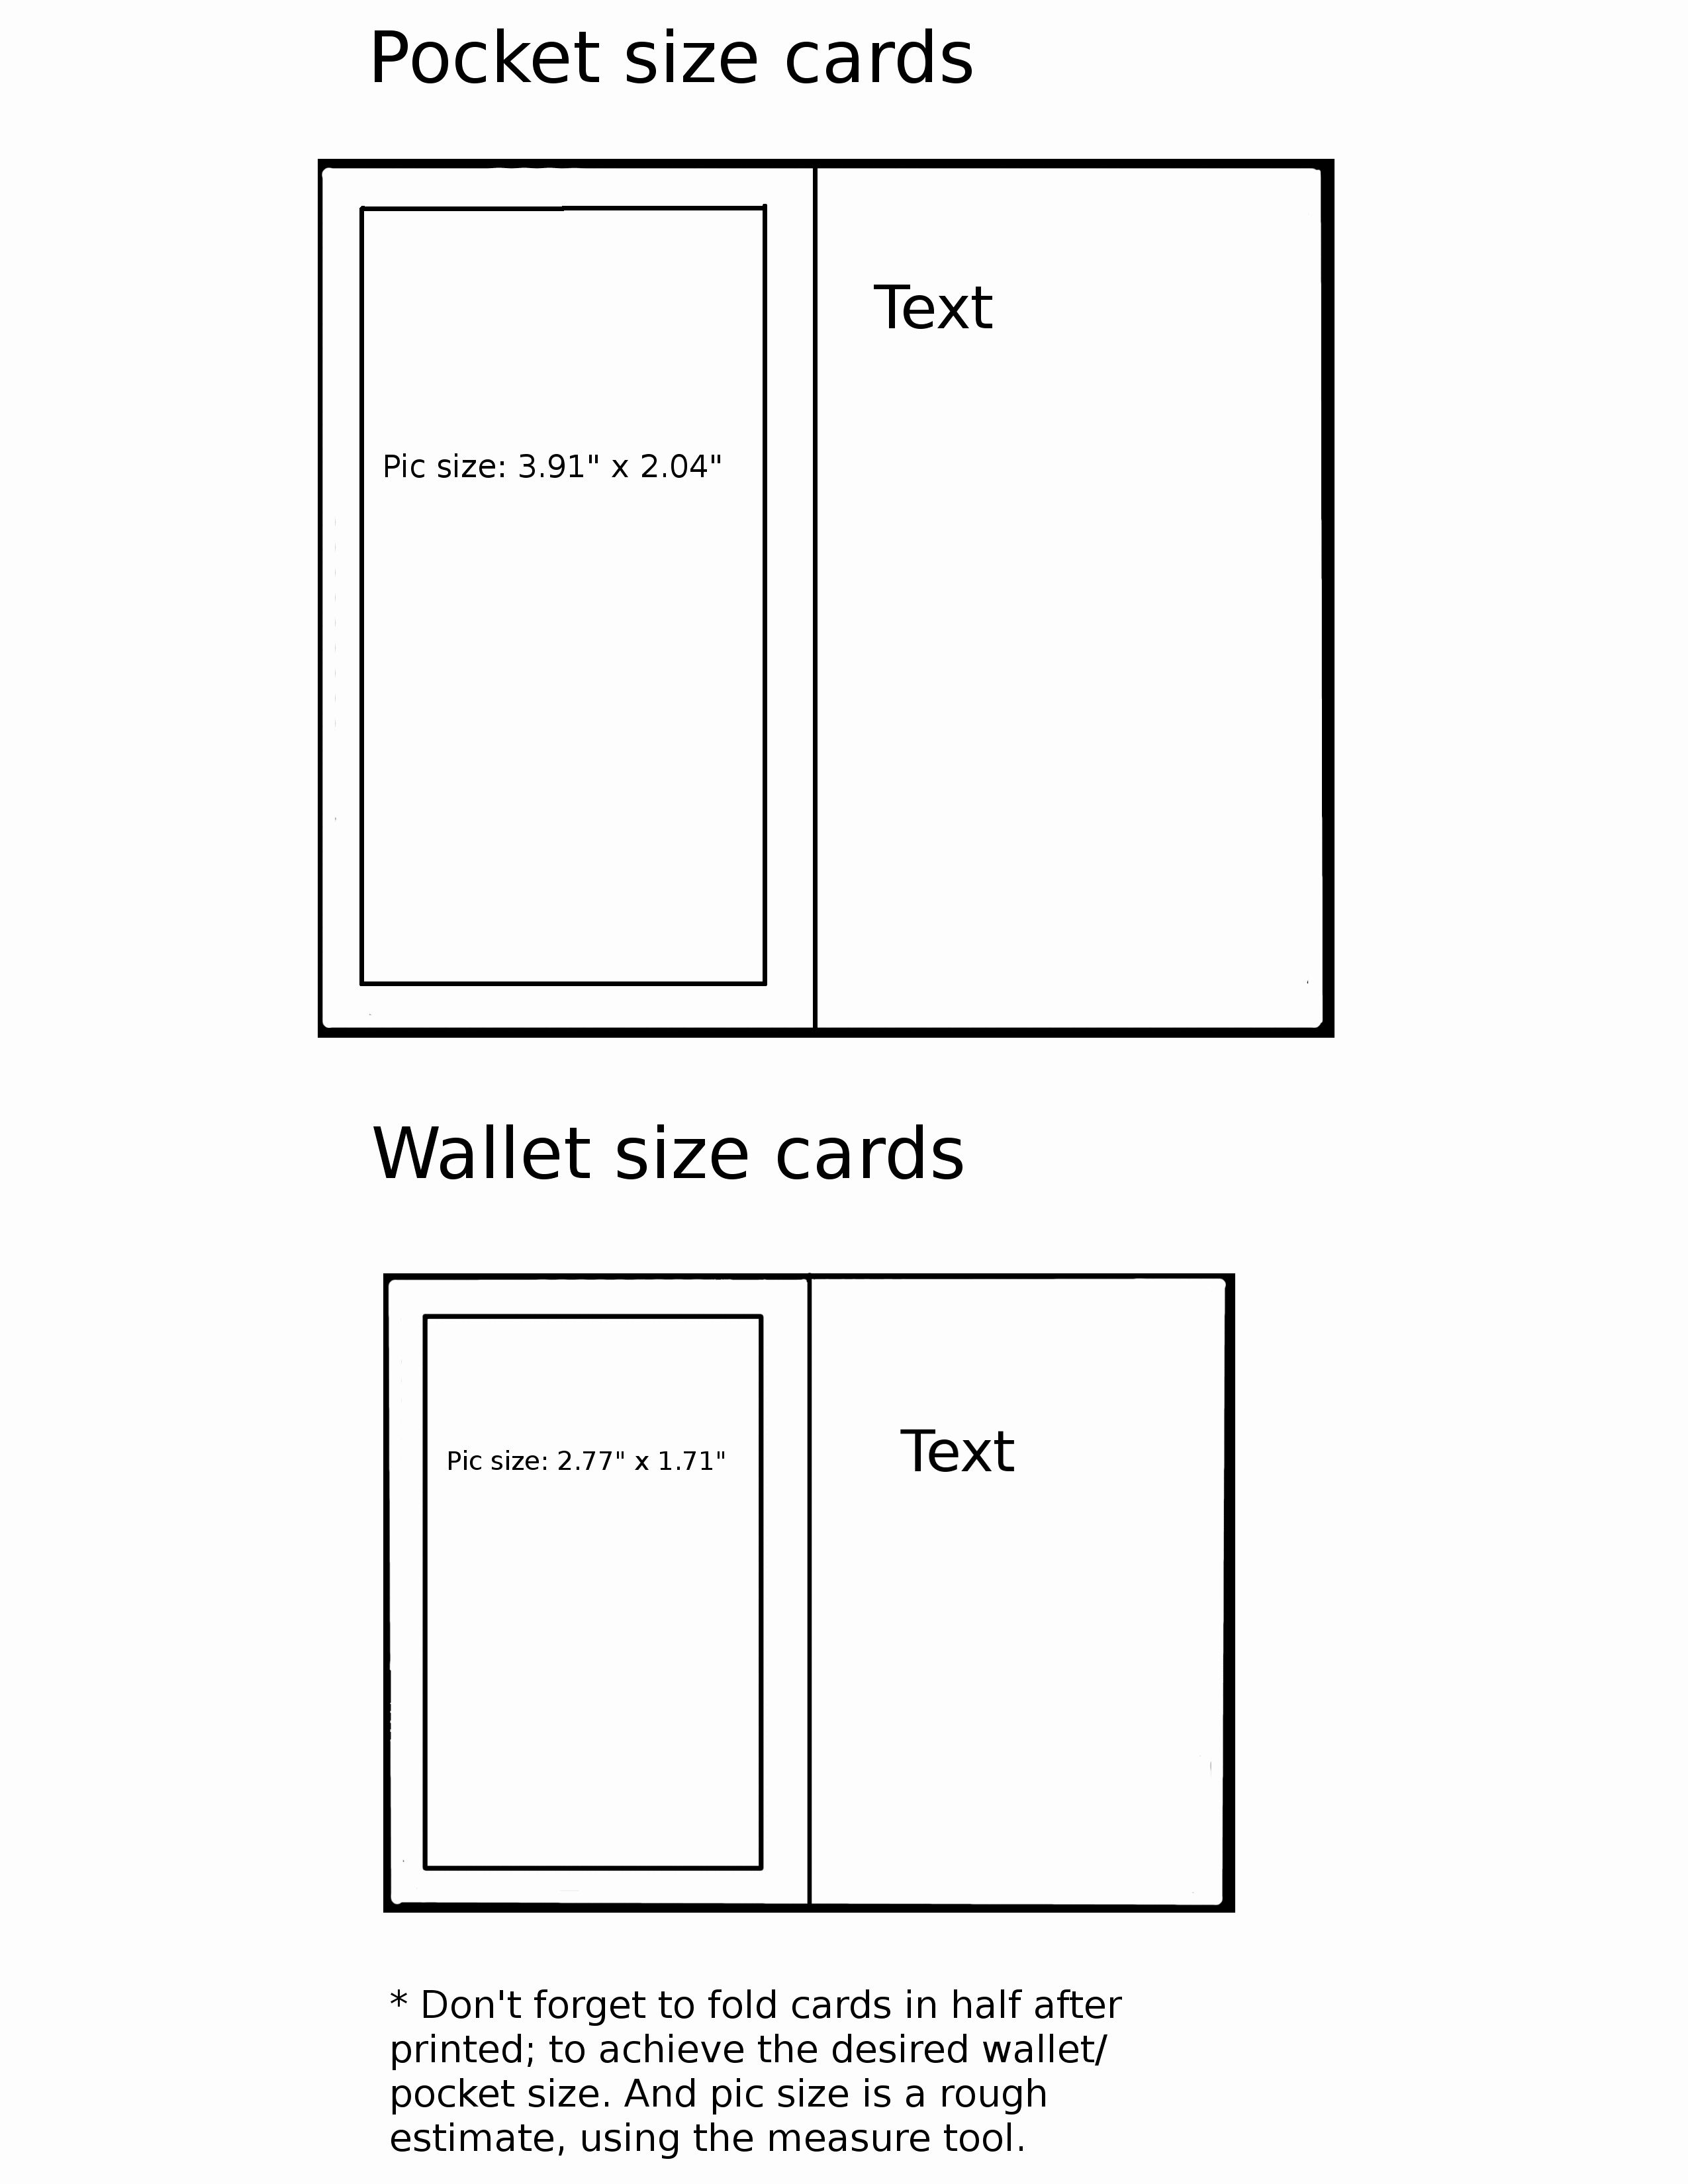 Wallet Card Template Free Inspirational Pocket Wallet Card Template By Mystictempest On Deviant Card Templates Free Free Business Card Templates Card Templates